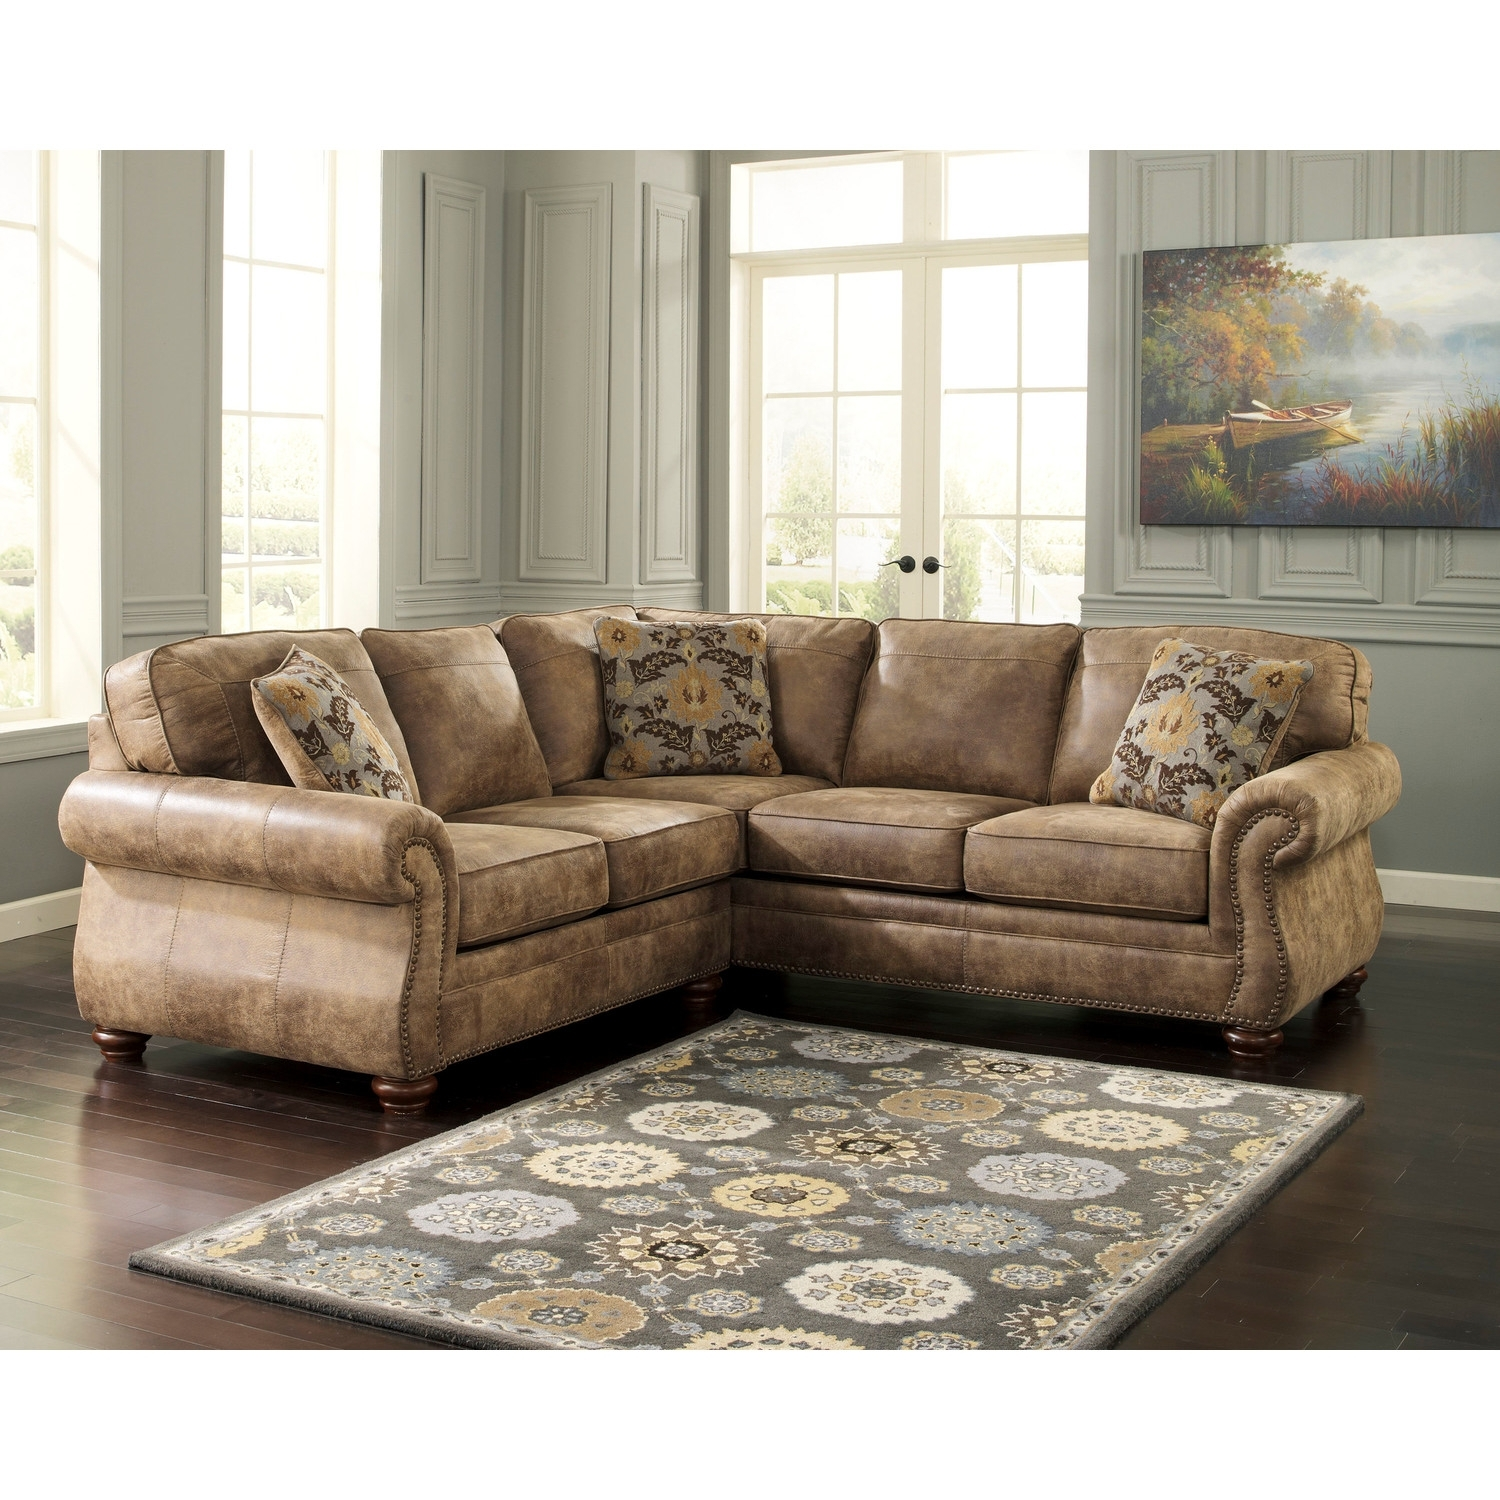 Furniture : Sectional Sofa 102 X 102 49Ers Recliner Chair Recliner for 102X102 Sectional Sofas (Image 4 of 10)